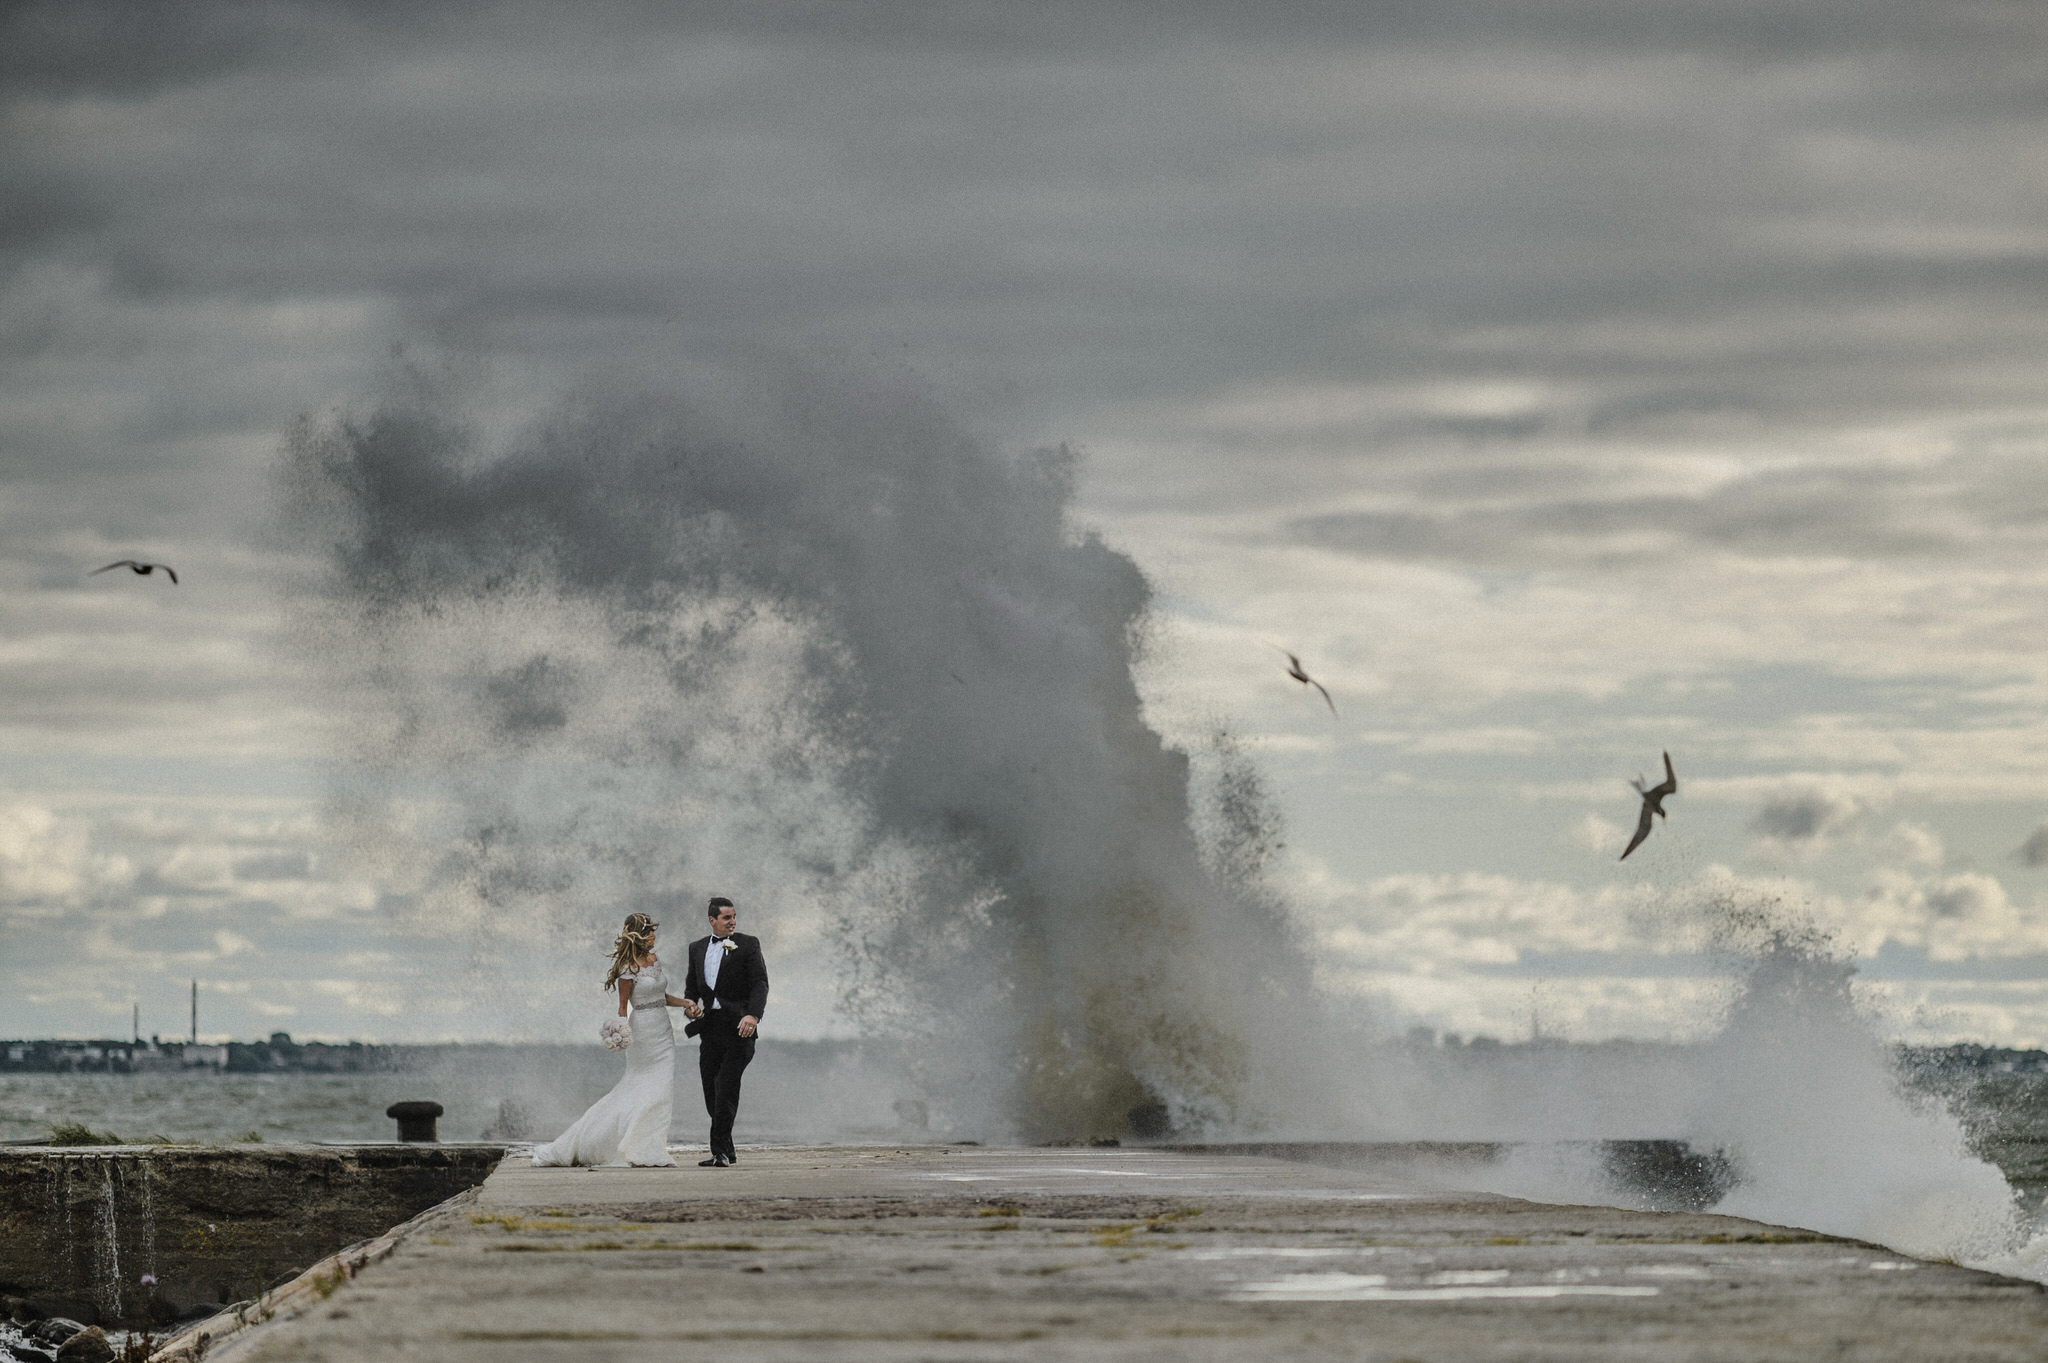 Huge wave crashing over bride and grooms head at the seaside